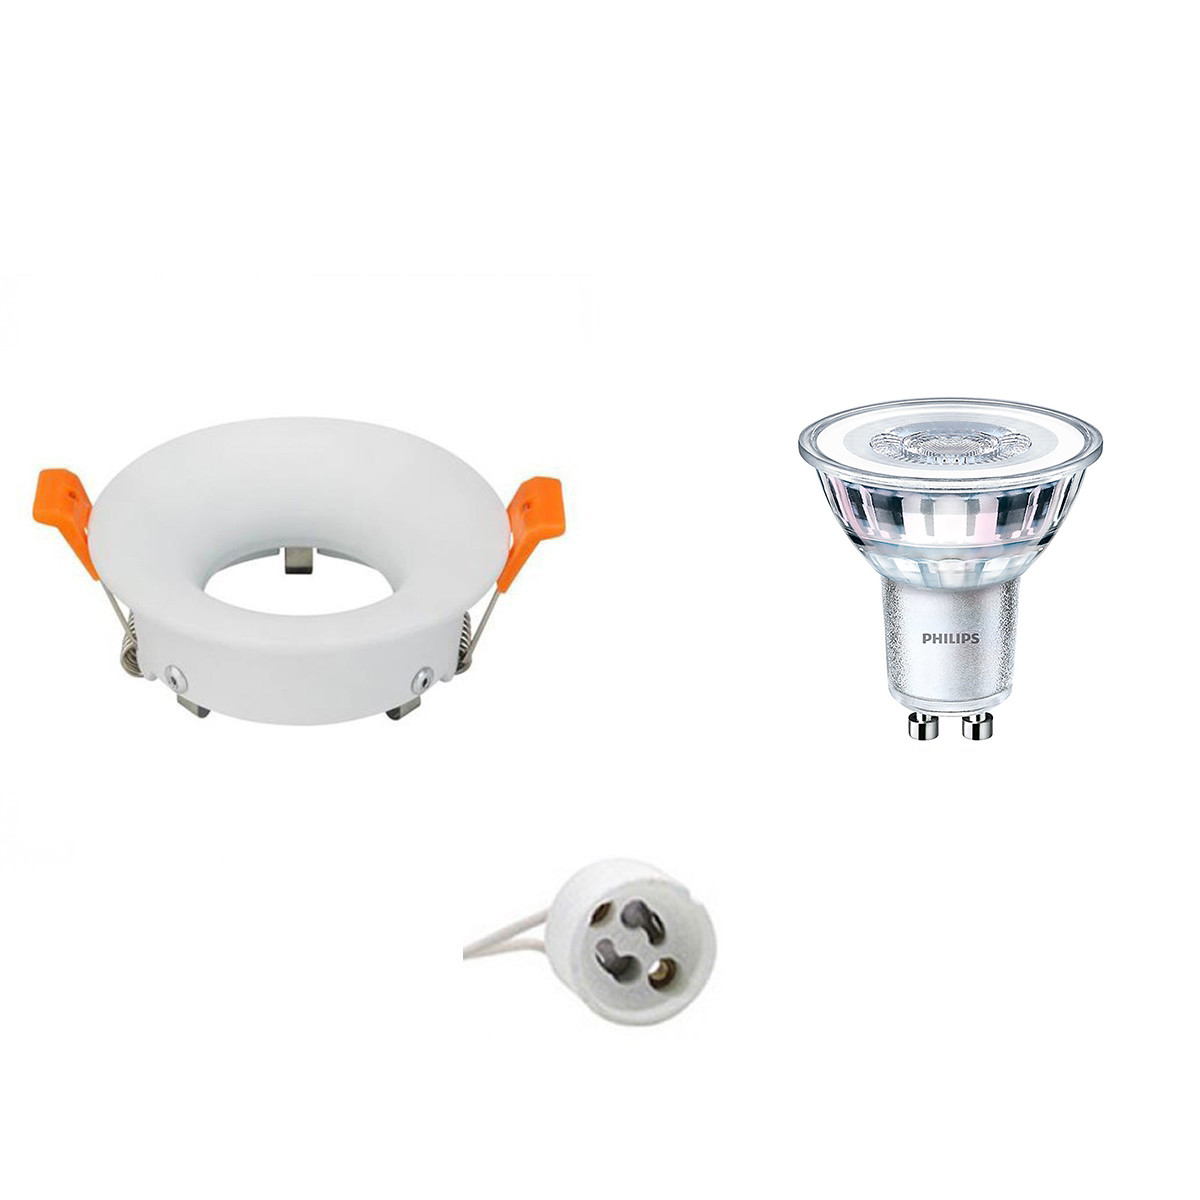 PHILIPS - LED Spot Set - CorePro 840 36D - GU10 Fitting - Dimbaar - Inbouw Rond - Mat Wit - 4W - Nat